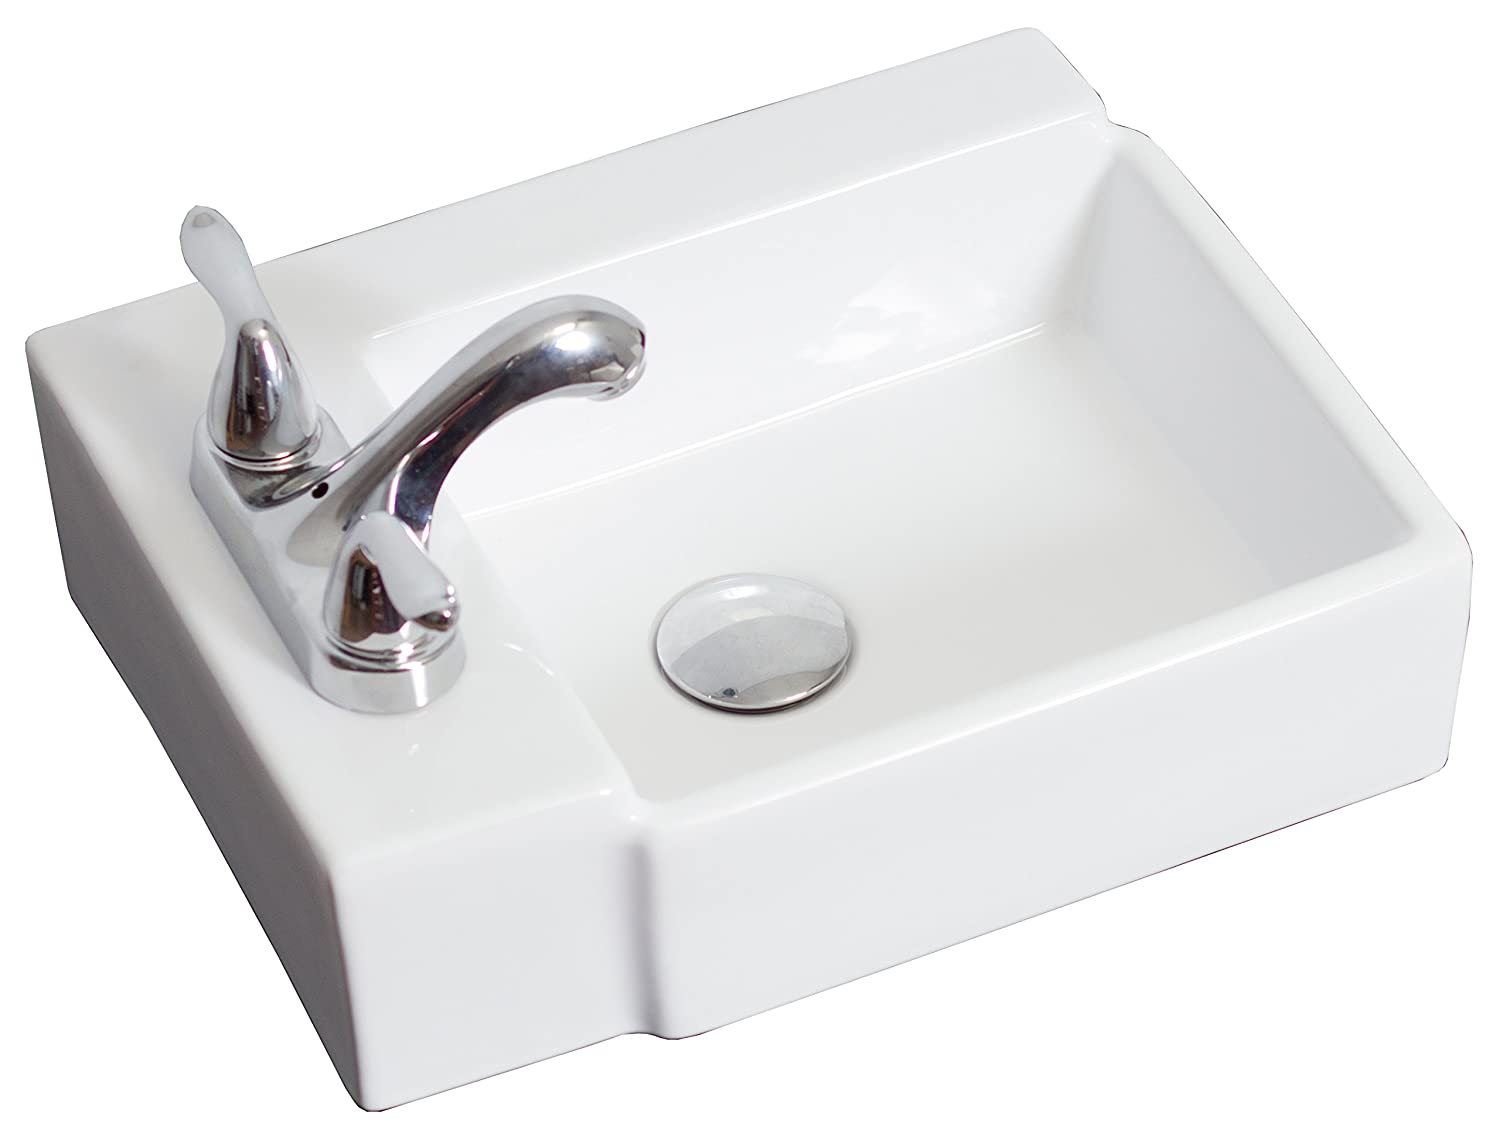 American Imaginations AI-8-1304 Wall Mount Rectangle Vessel for 4-Inch OC Faucet, 16.25-Inch x 12-Inch, White IMG Imports Inc.